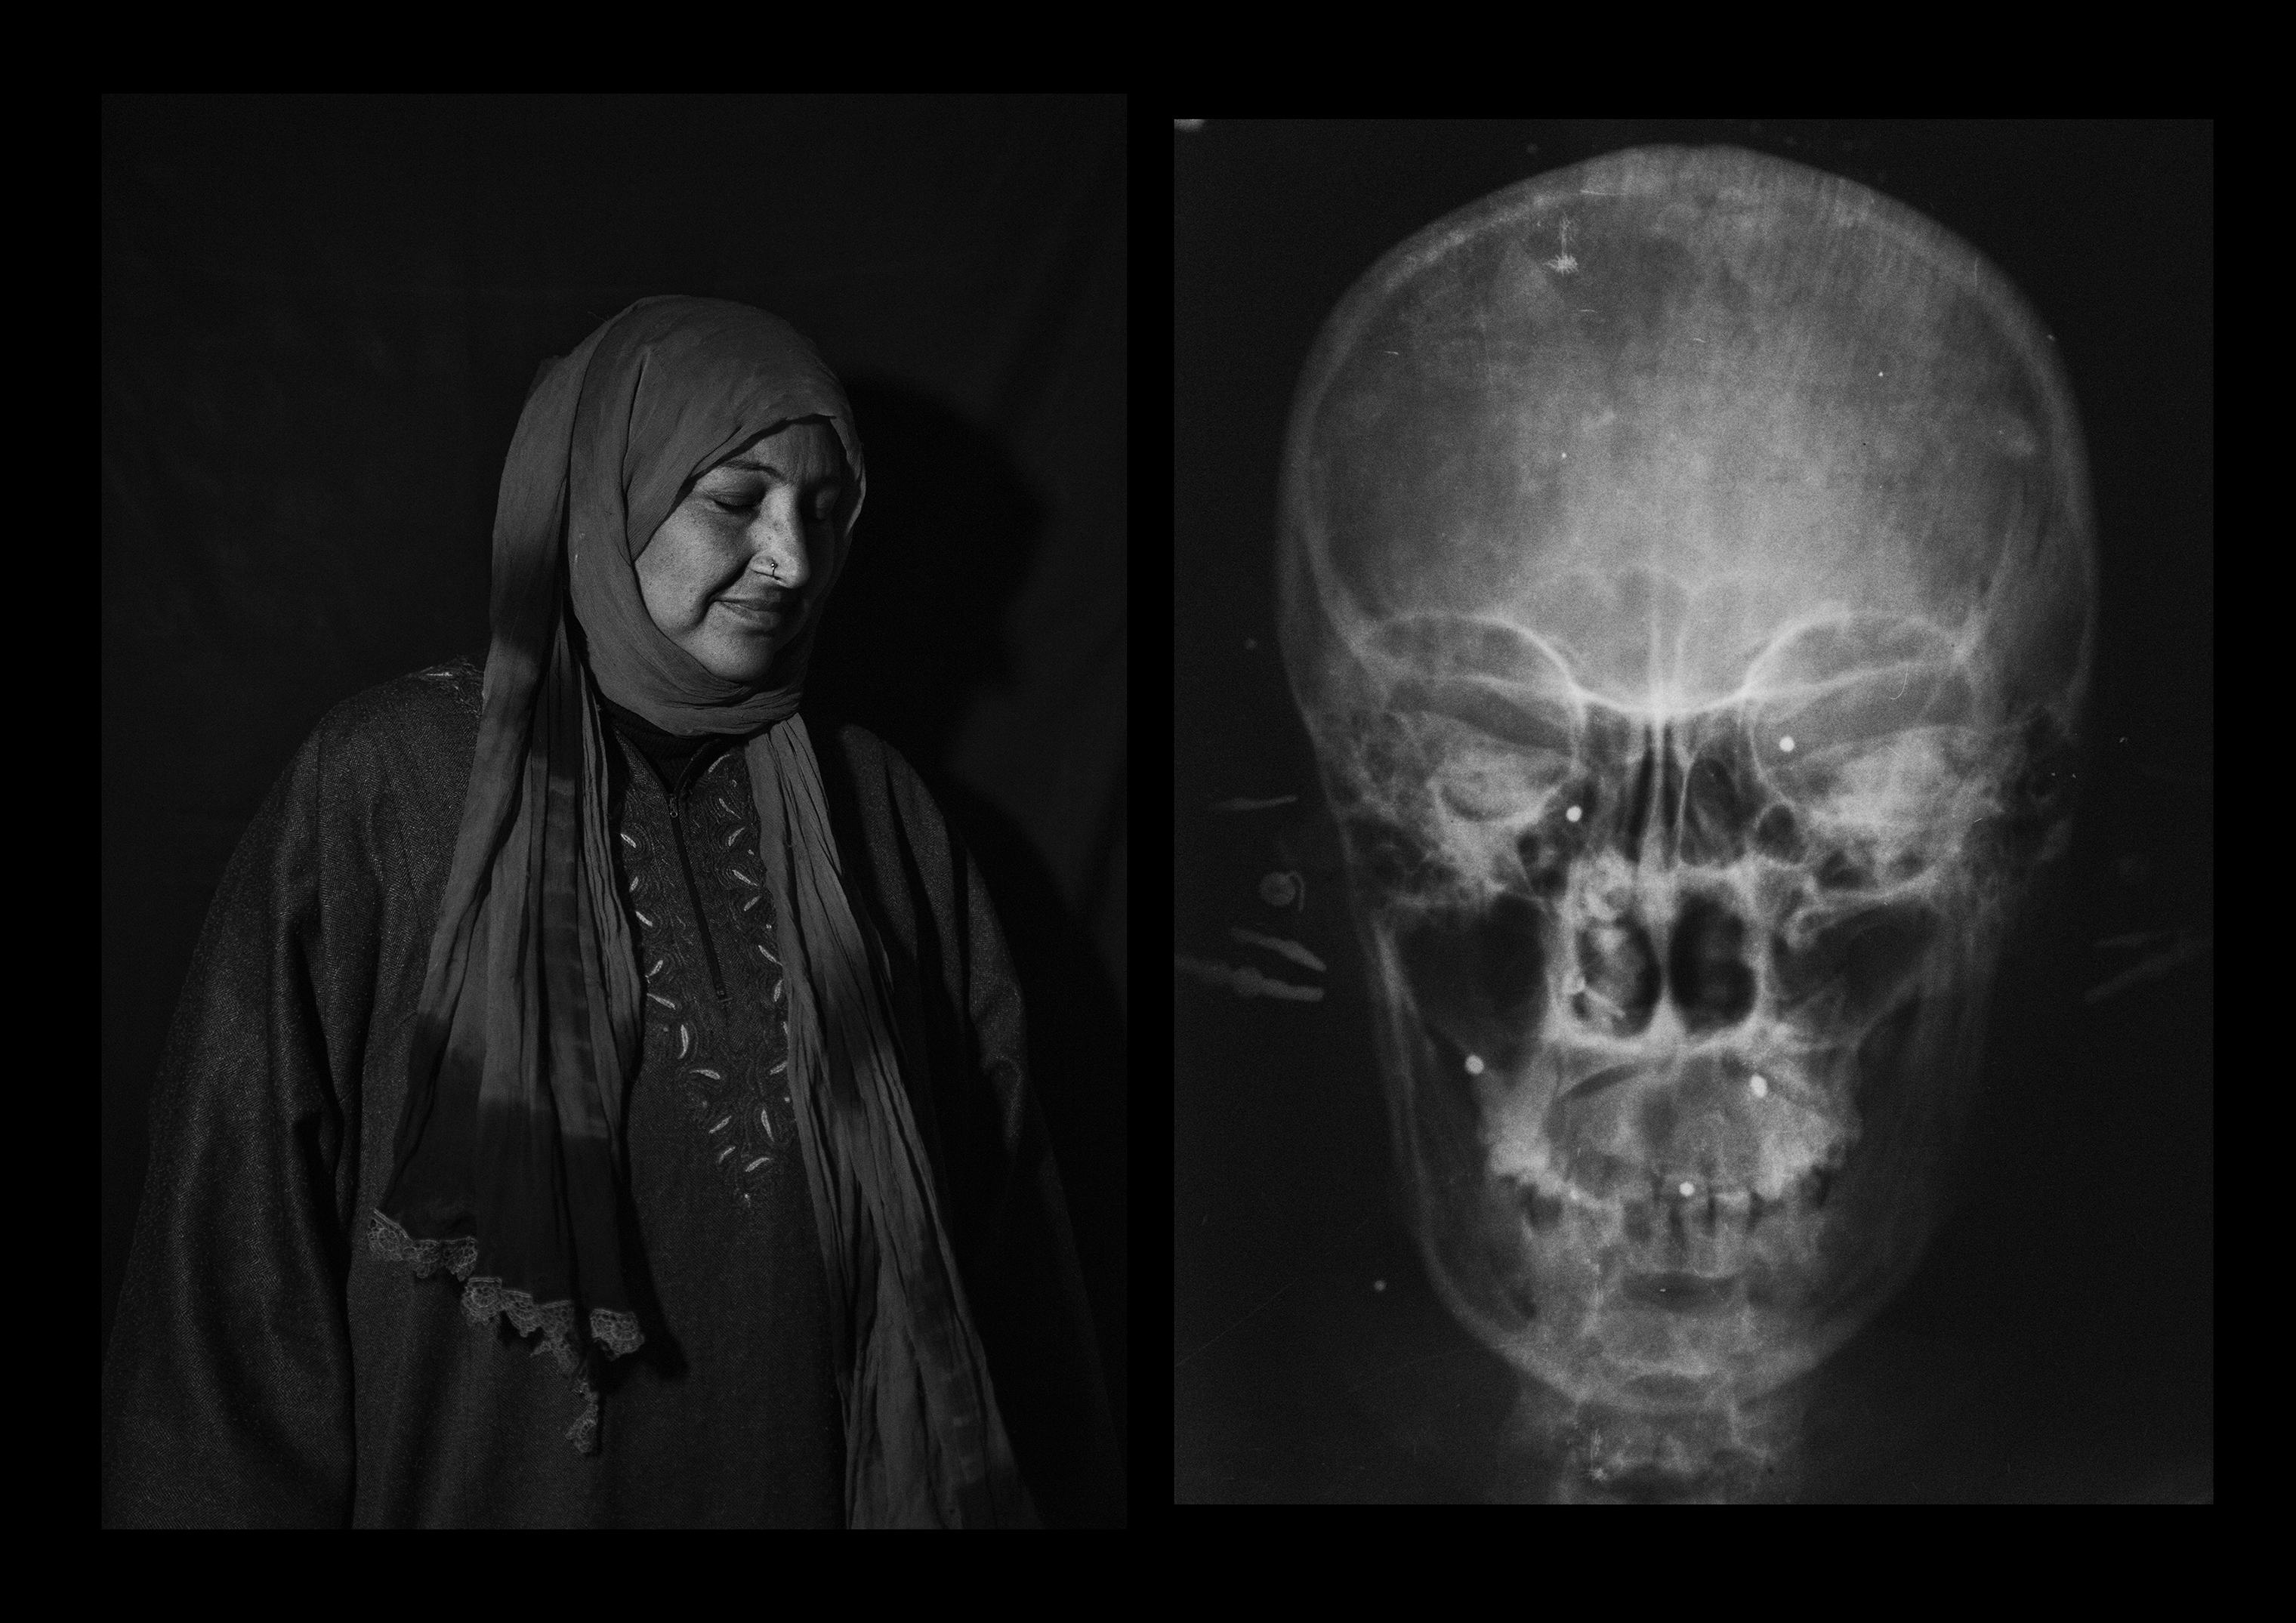 Shakeela Begum, 35 years old, from Sheeri. She was hit by dozens of pellets on her chest and face. One entered her left eye and two hit her right eye. The pellets were shot from a very short distance and traveled beyond the retina, leaving her with only 10% of her vision.